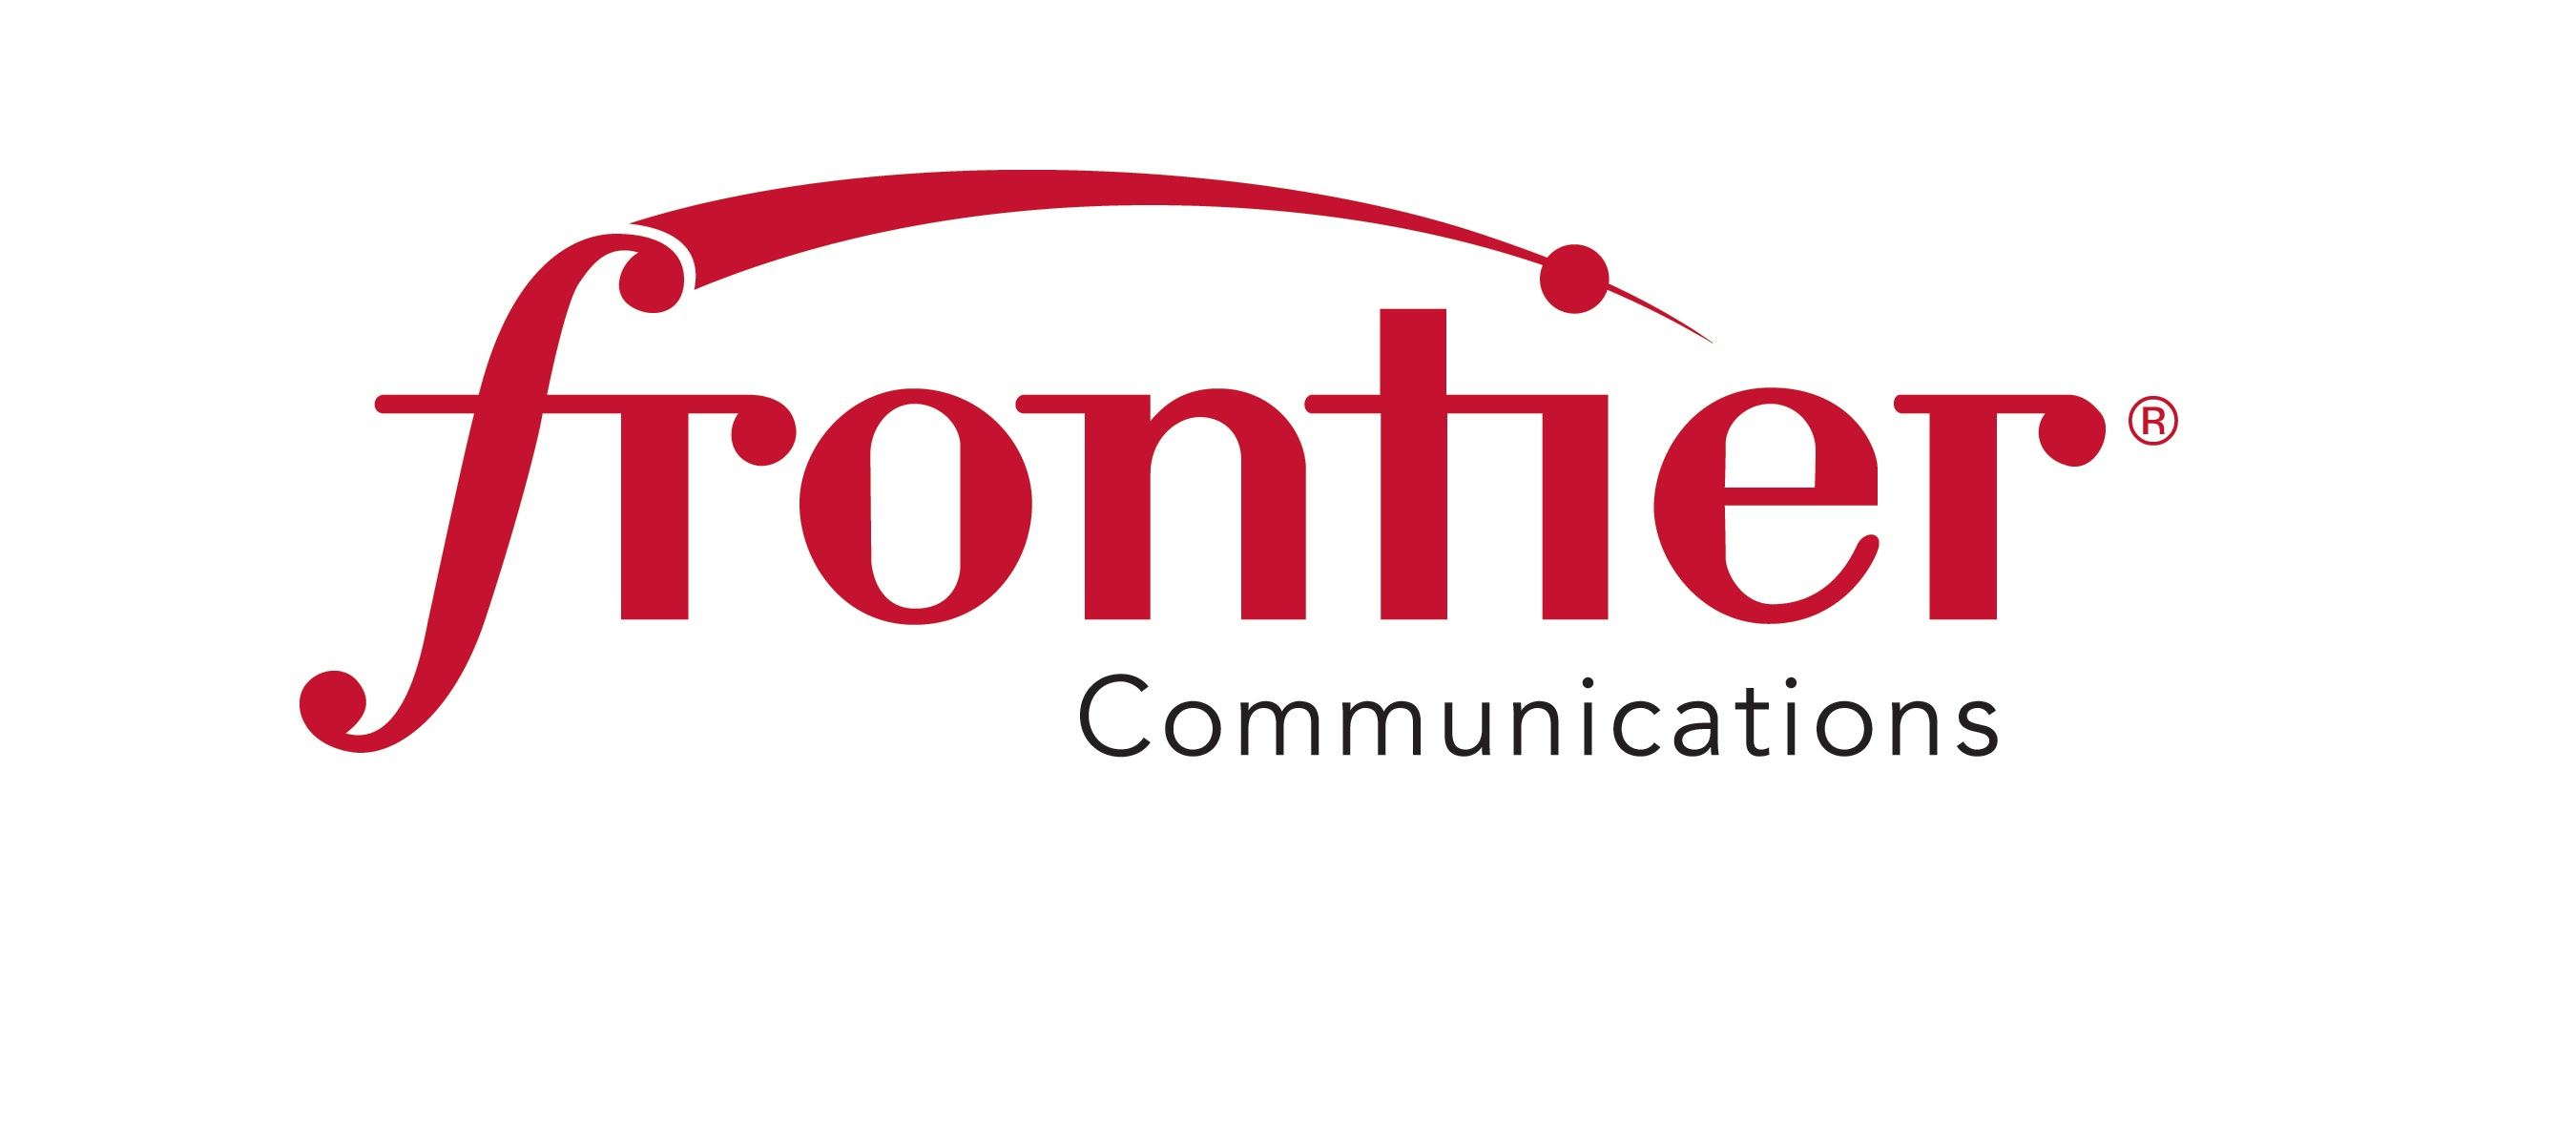 Frontier munications petitor Seeks Revenge with Lawsuit